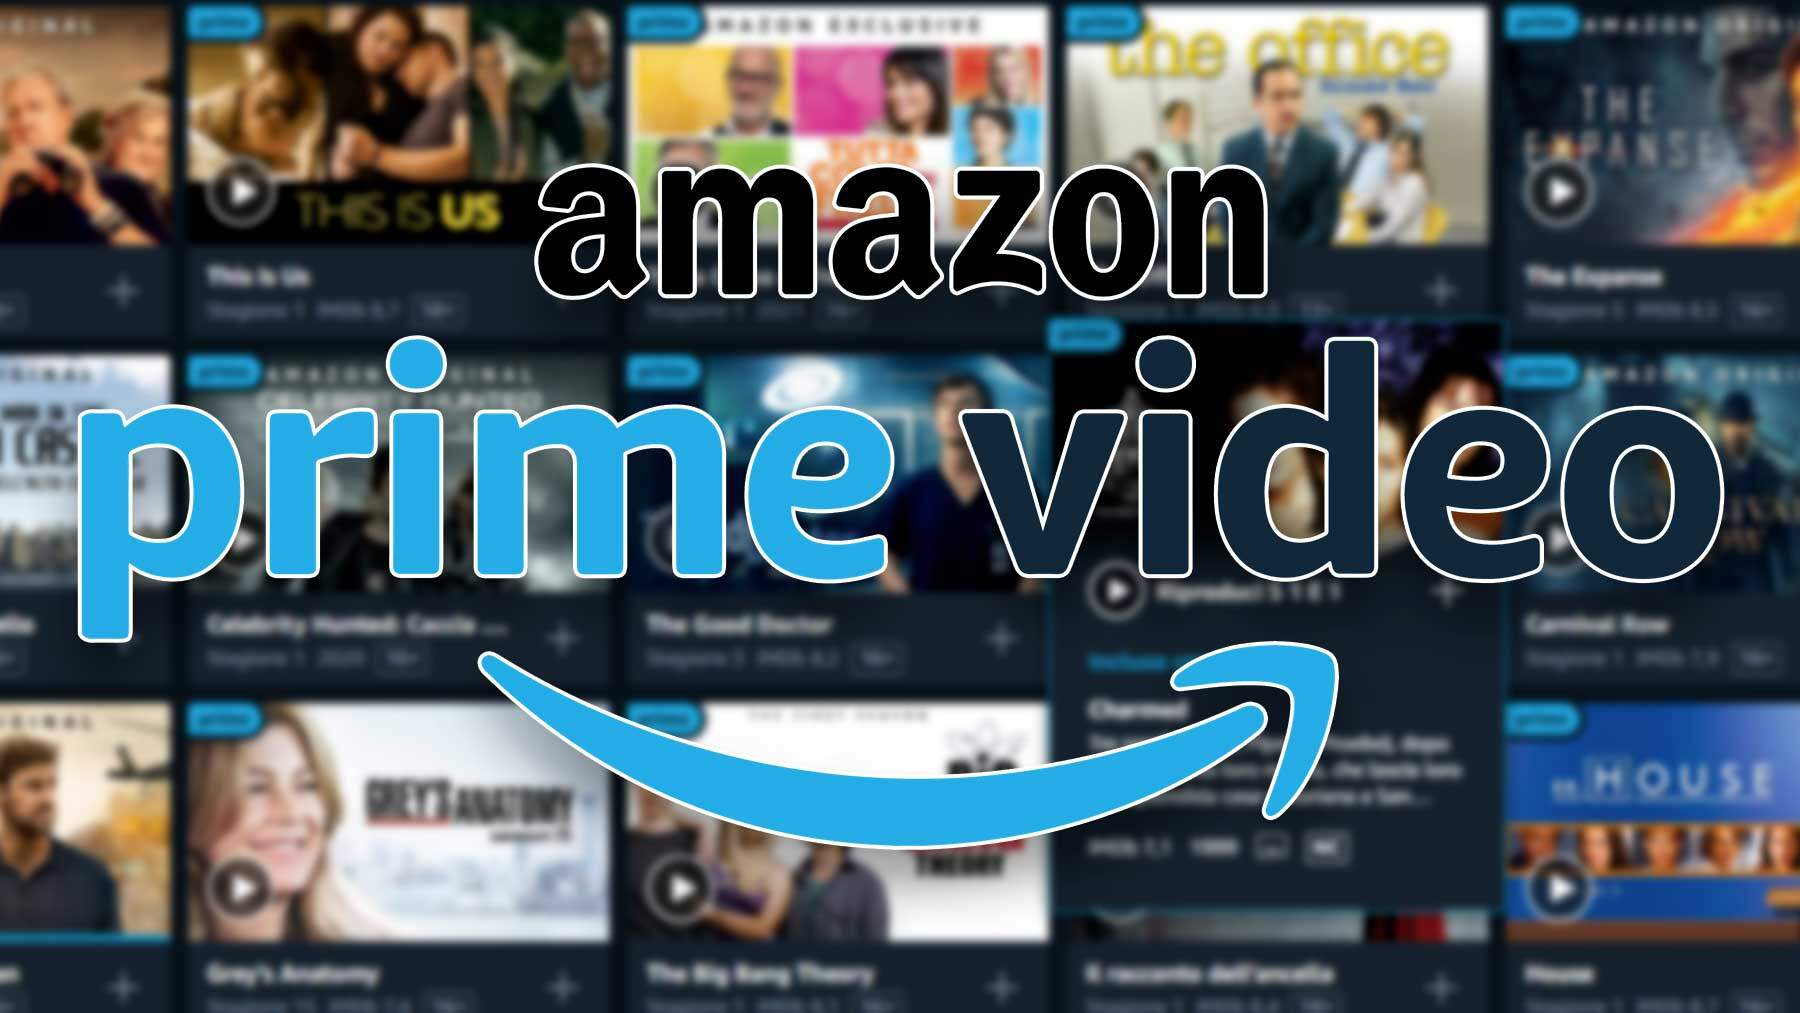 Serie Tv Amazon Prime Video